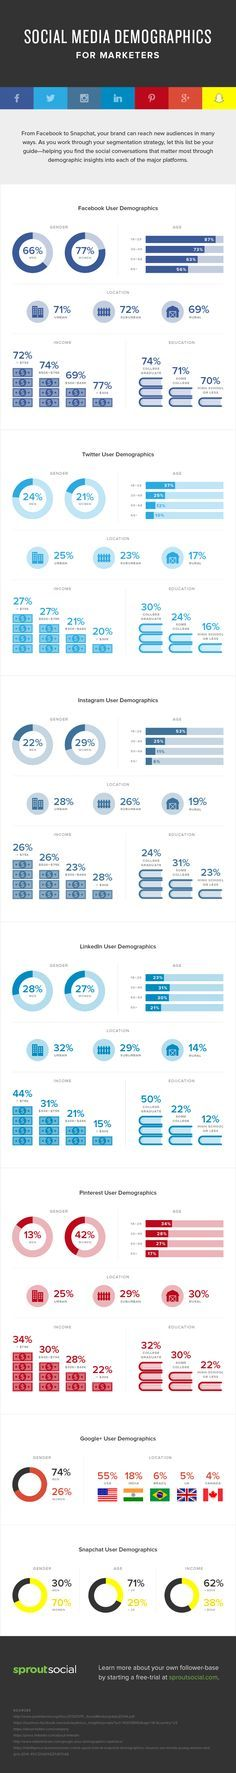 Social Media Demographics for Marketers // La demografía de los medios sociales, la guía más completa.